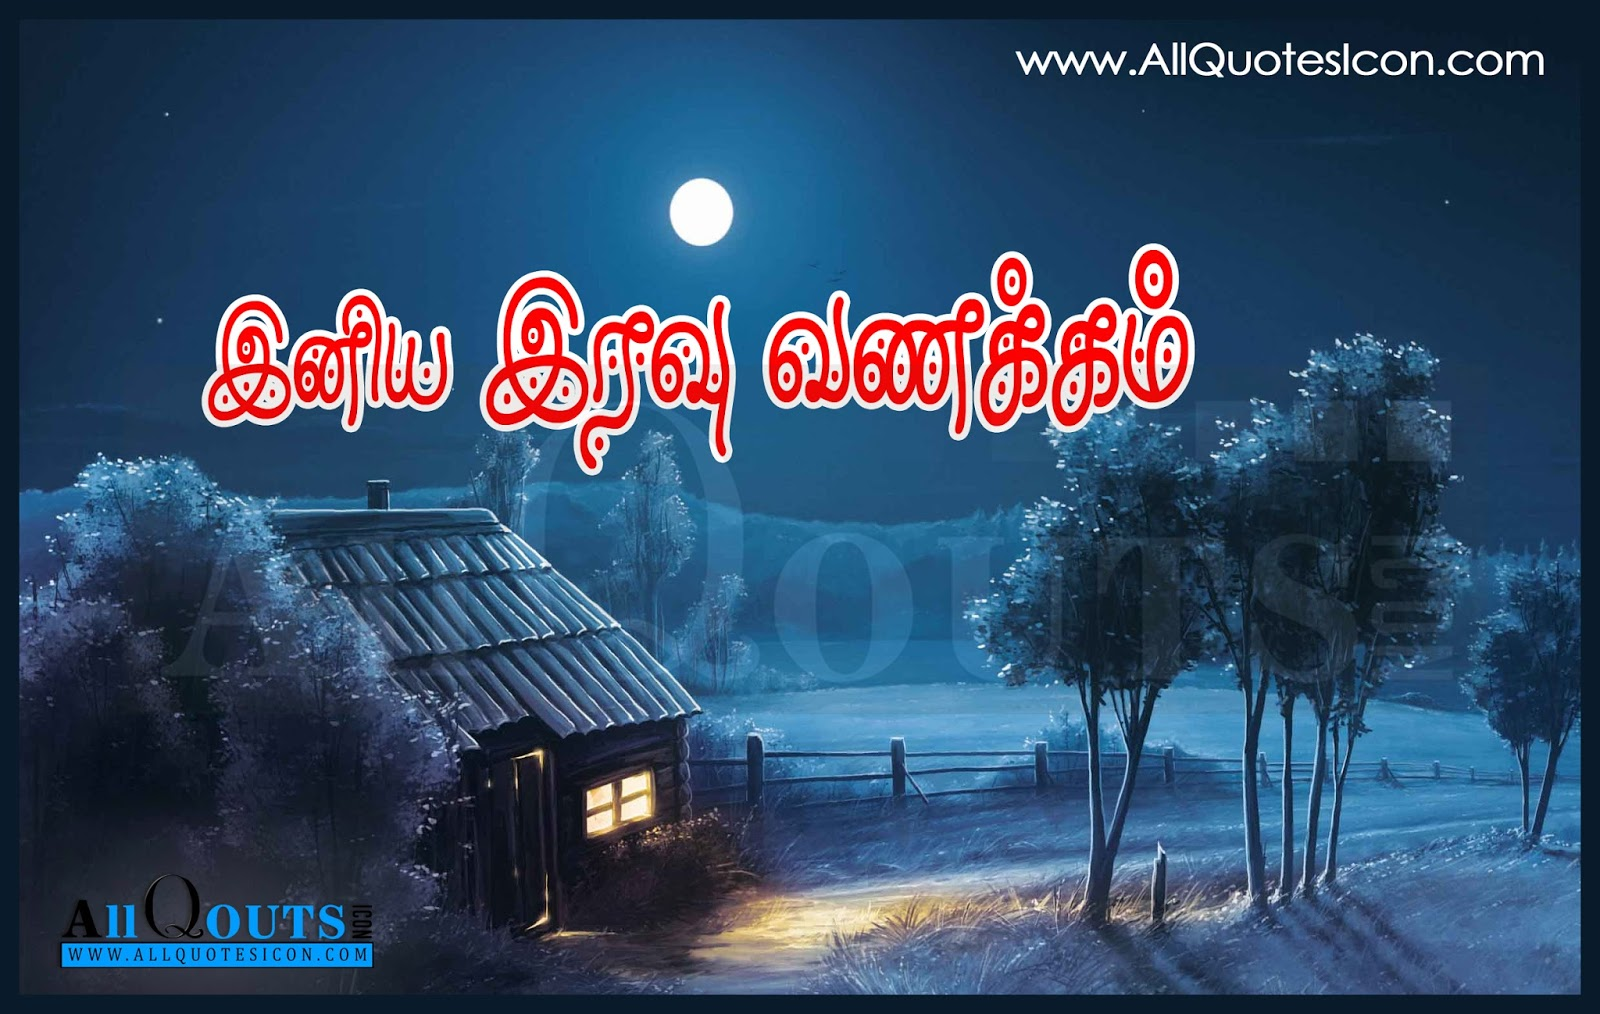 Royalty Free Good Night Tamil Quotes For Friends - quotes